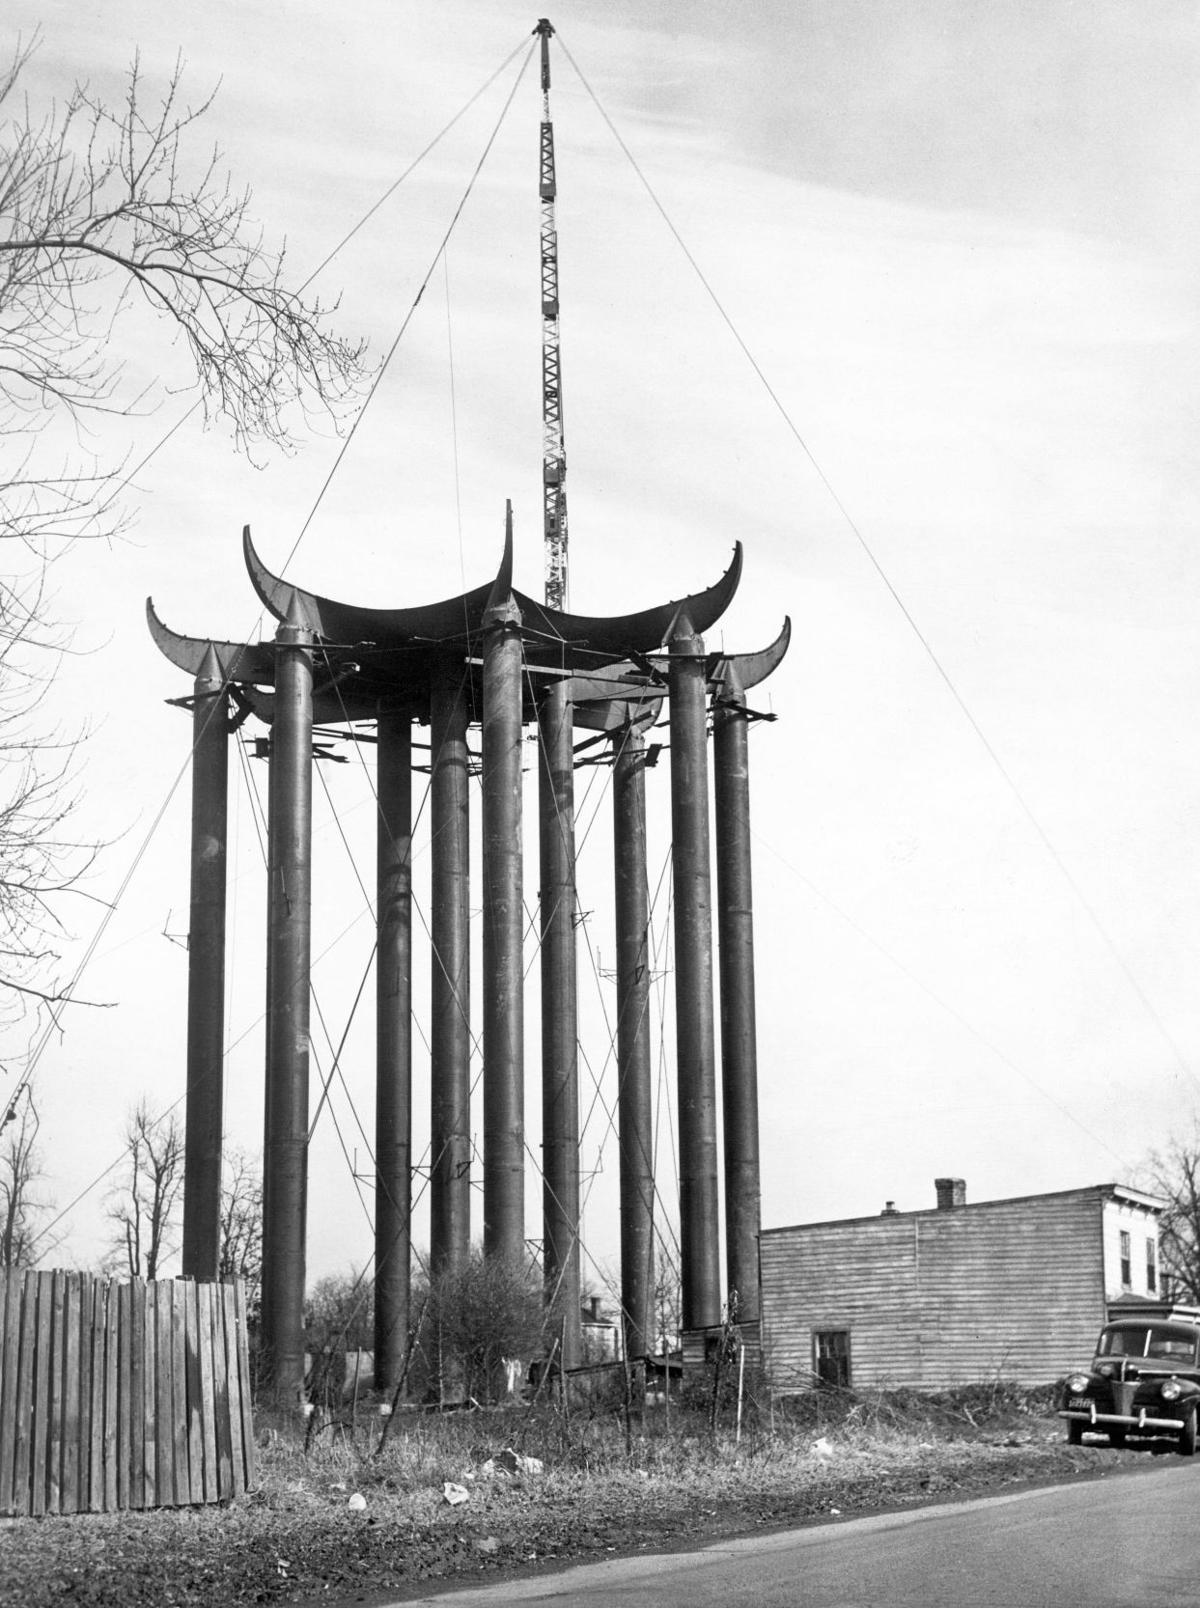 From the Archives: Water towers | From the Archives | richmond.com